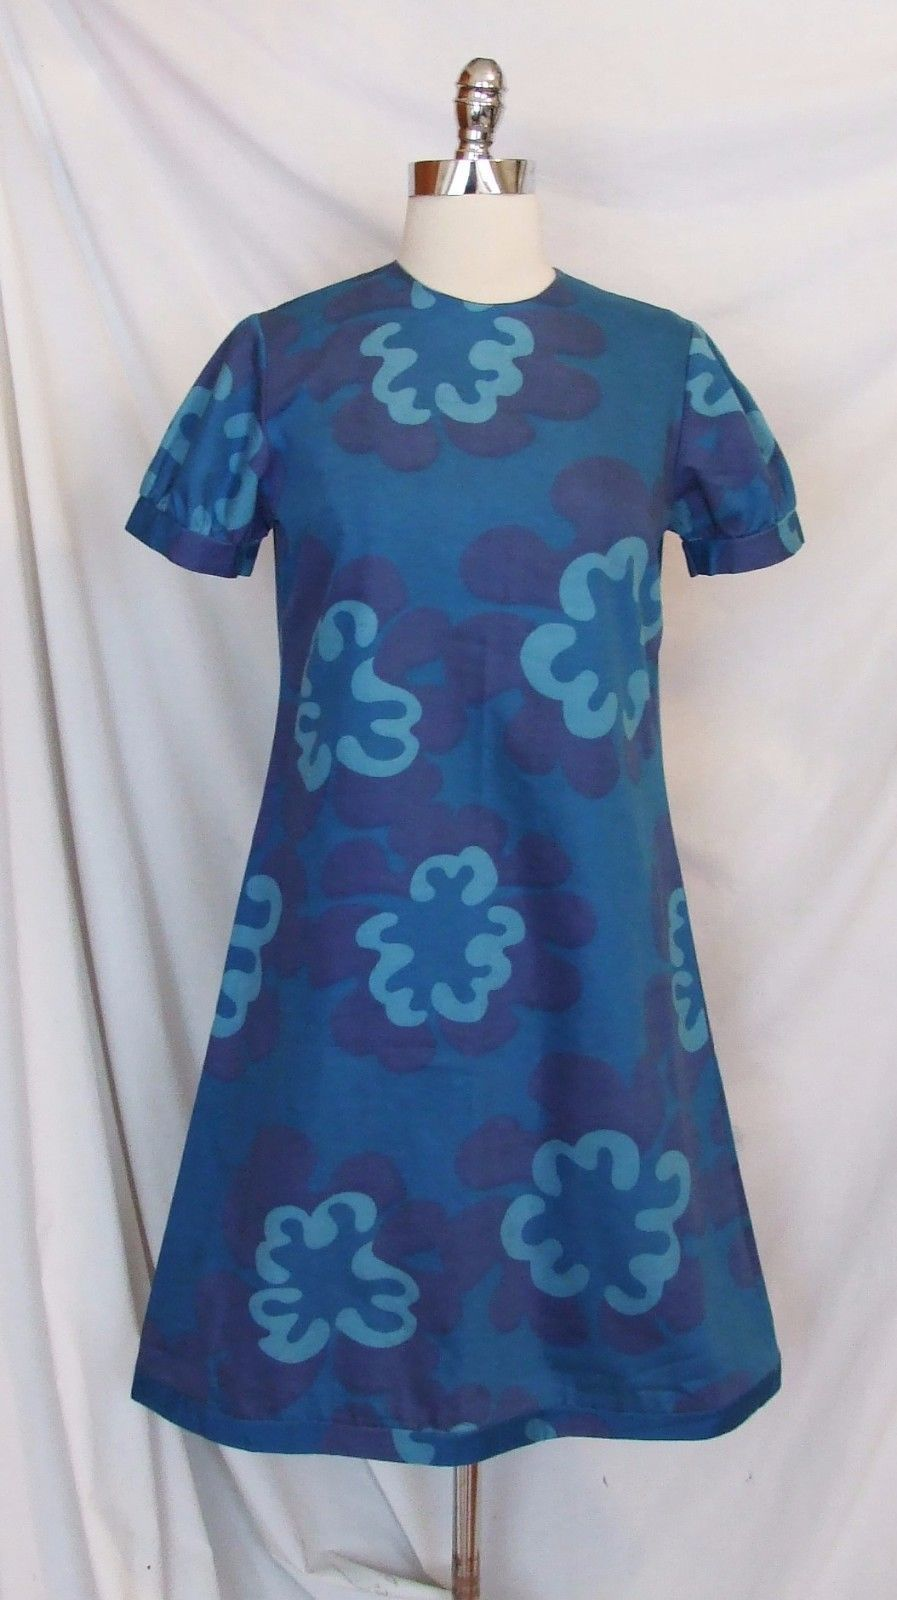 Vintage 60s Mod Cotton Marimekko Era Lord Taylor Made In Finland Dress Curatorial